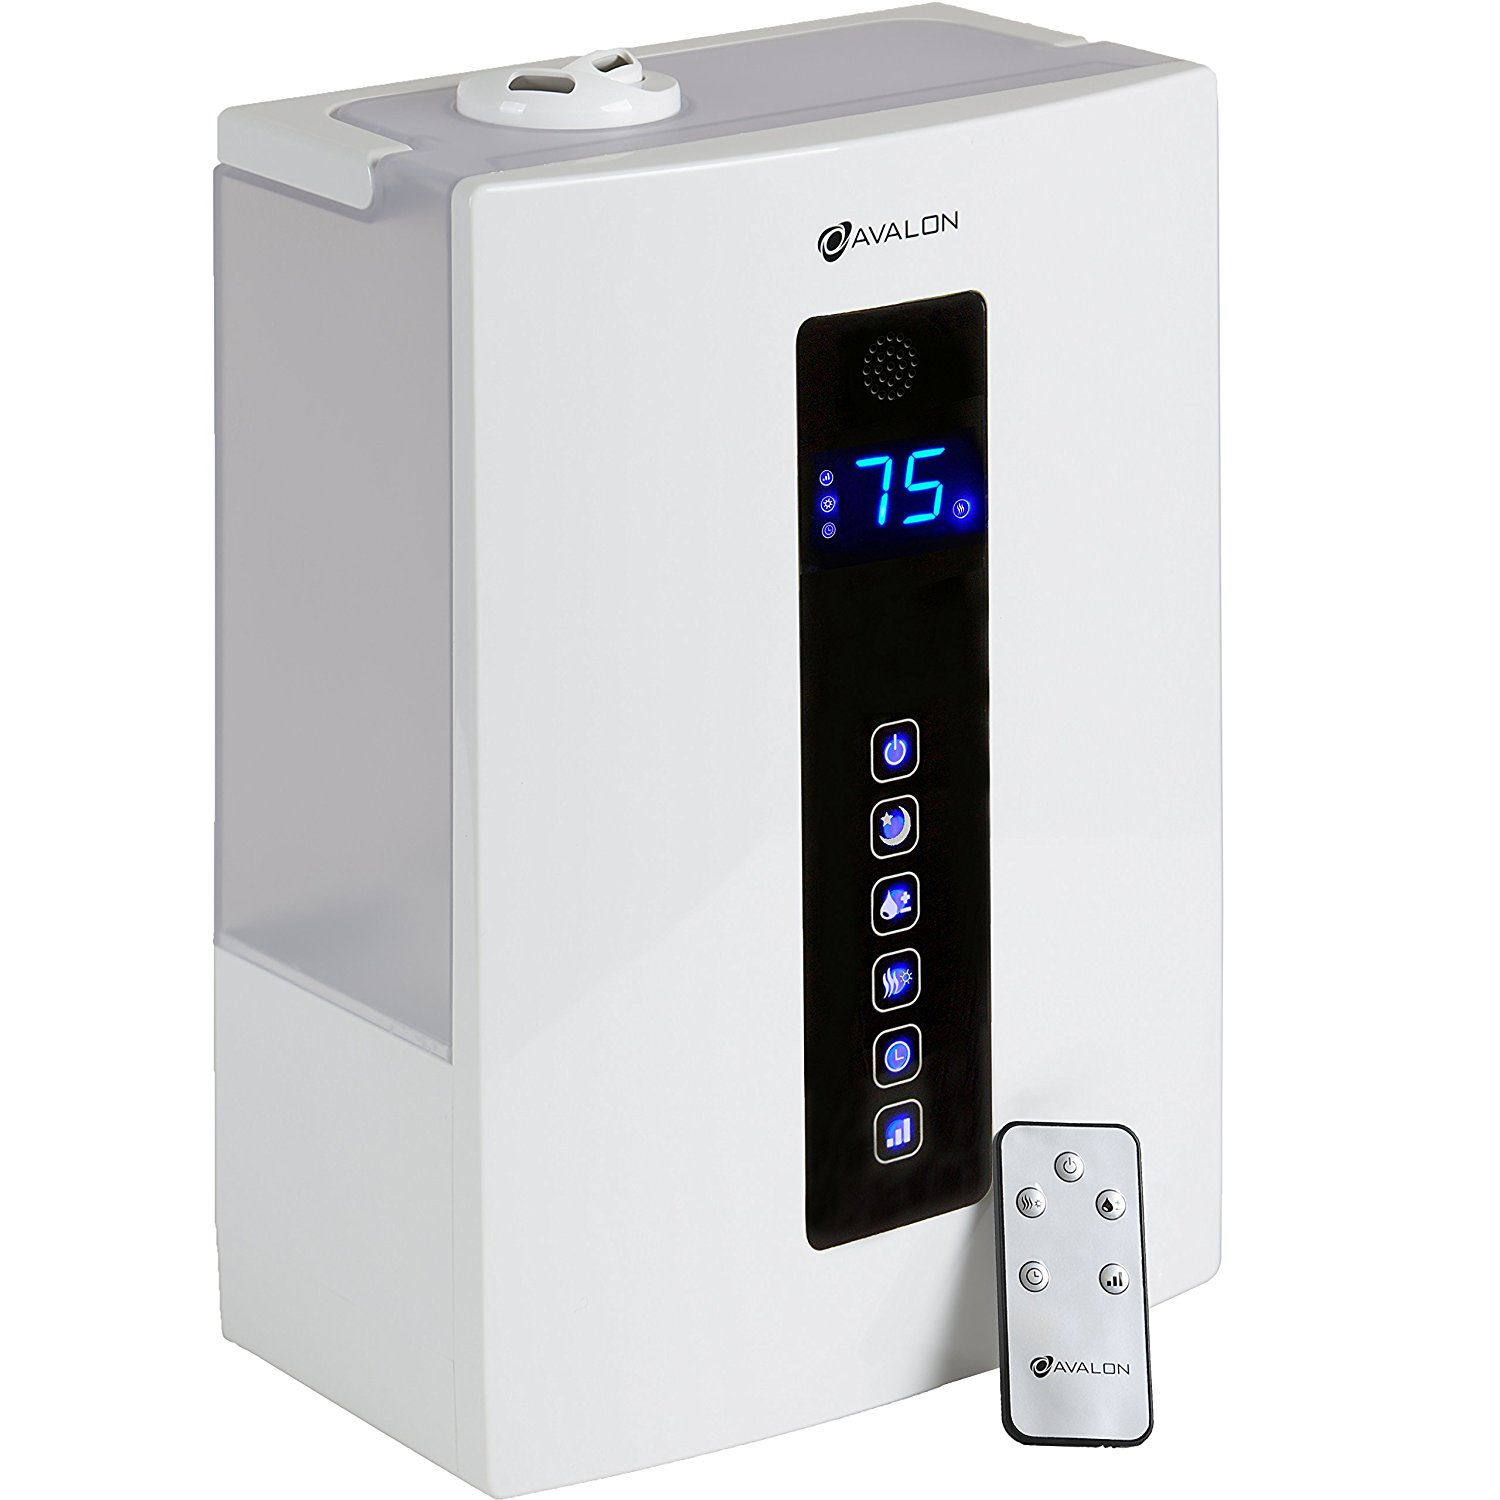 Get 55% OFF Today Avalon Premium 5 Liter Ultrasonic Digital Humidifier